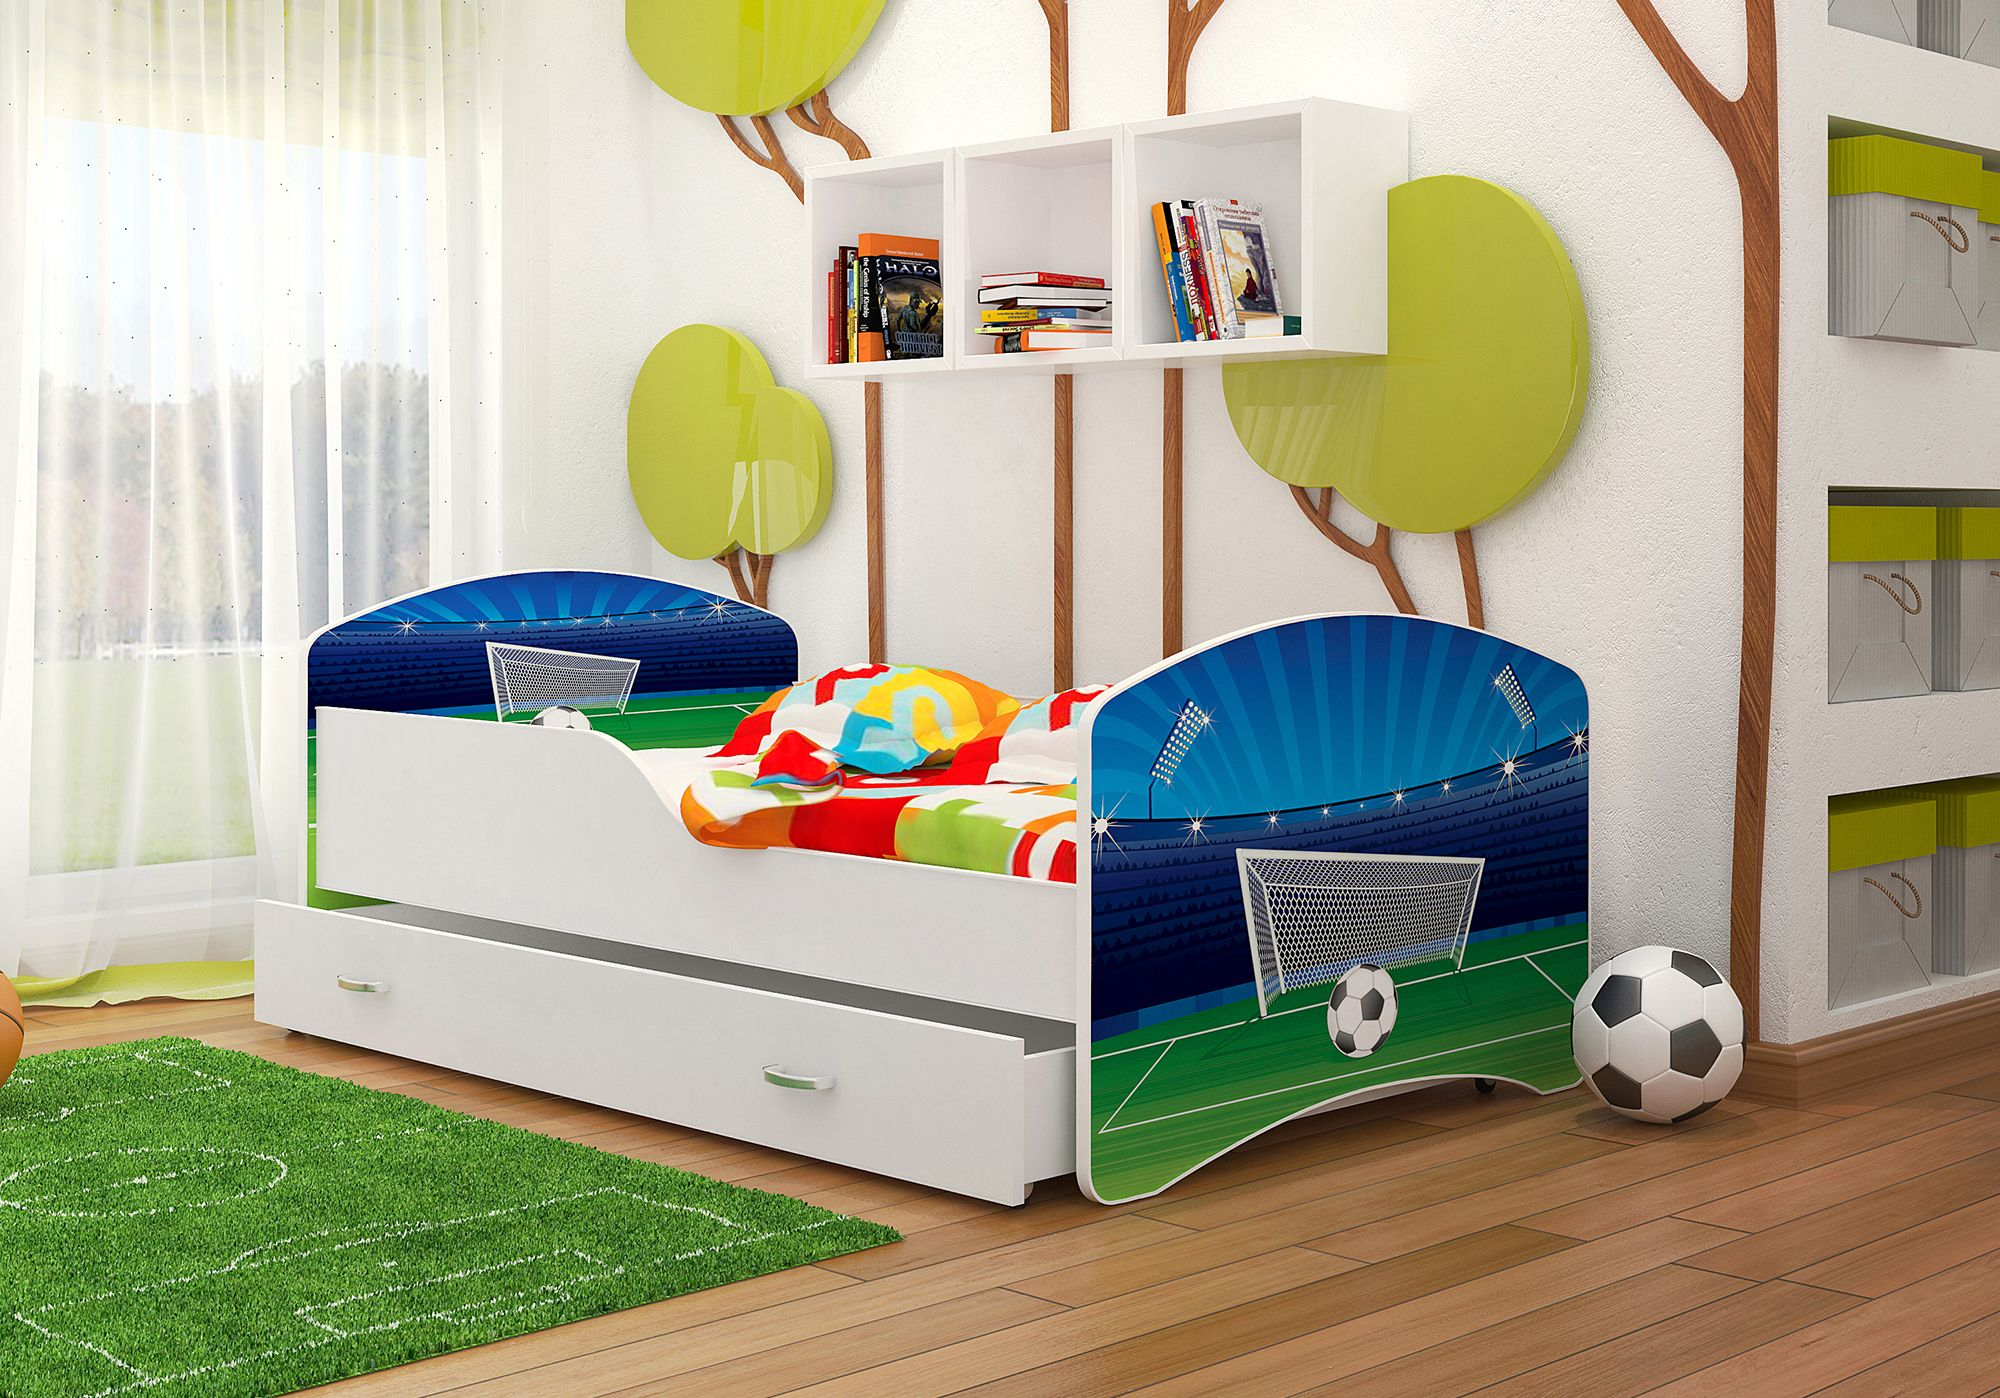 kinderbett mit matratze und lattenrost kinderbett mit lattenrost und matratze kinderbett mit. Black Bedroom Furniture Sets. Home Design Ideas